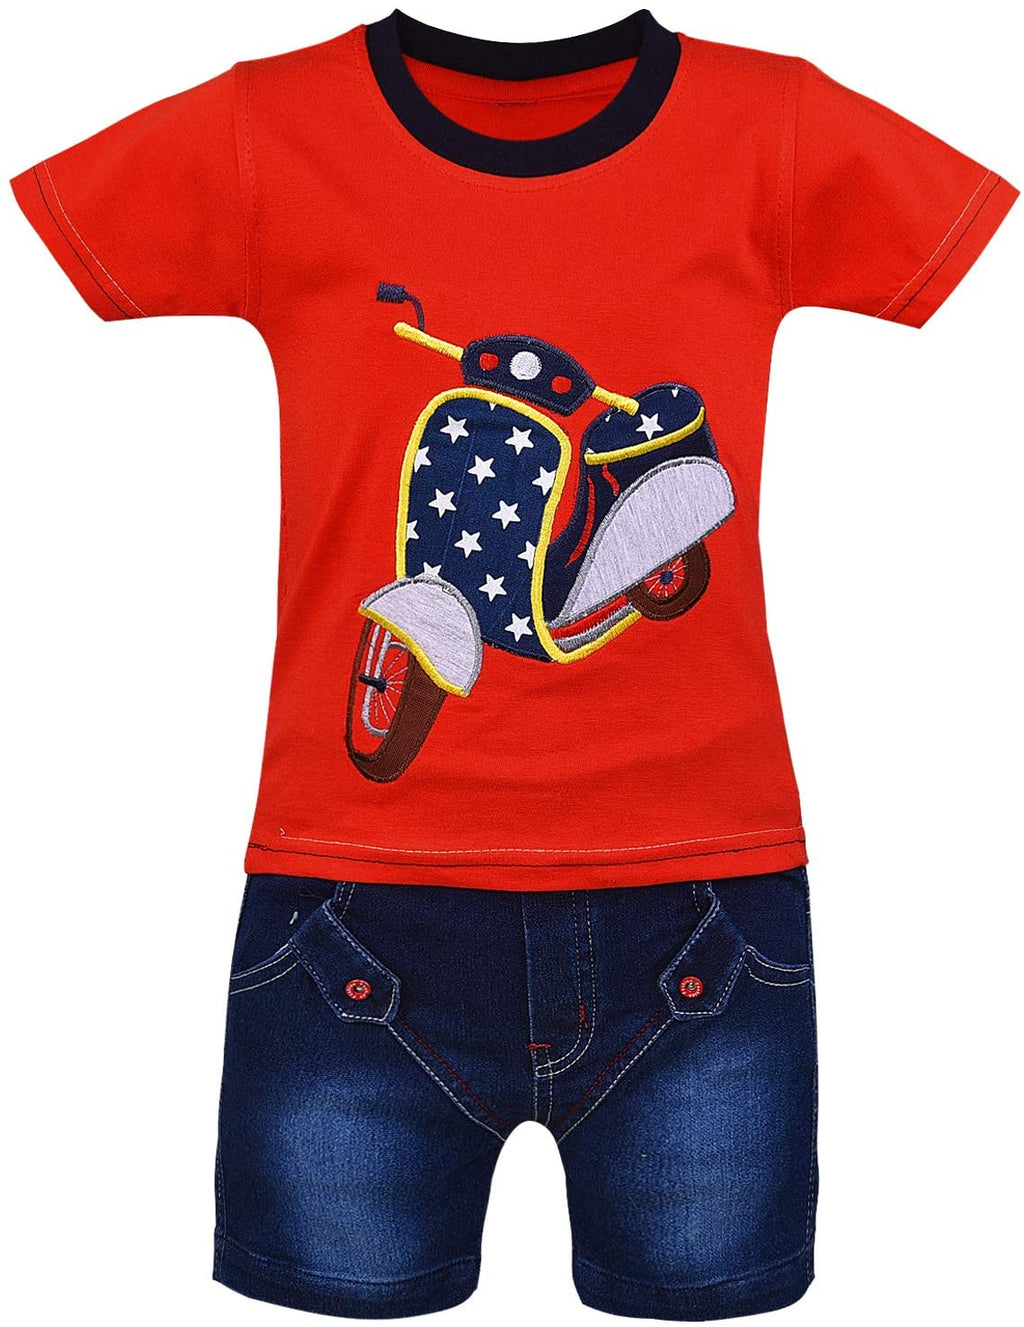 Wish Karo Unisex Clothing Sets for Boys & Baby Girls-(bt22rd)